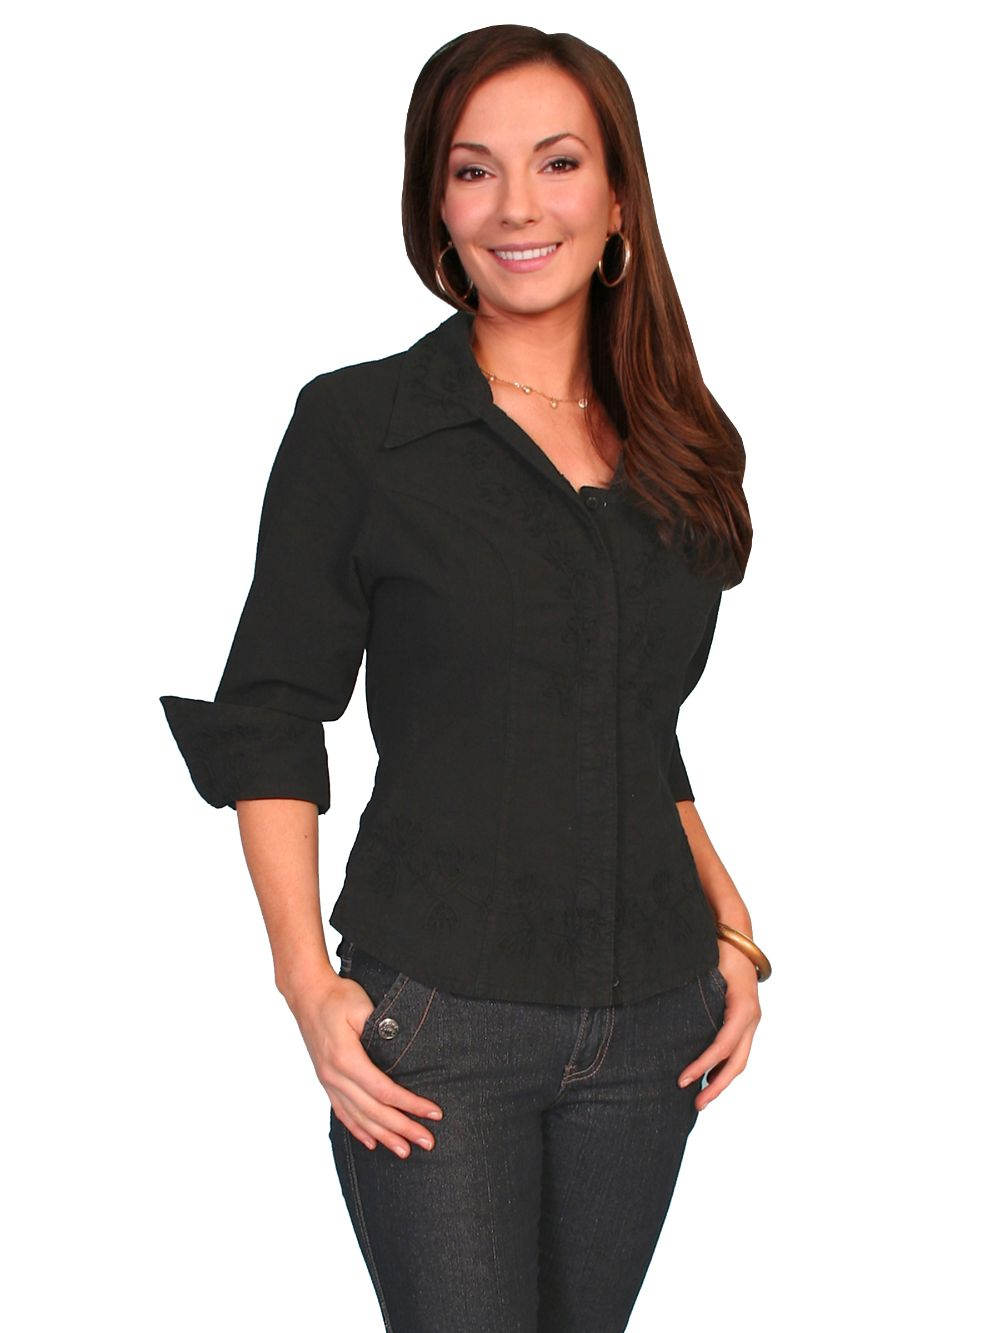 3/4 Sleeve Peruvian Cotton Blouse - Psl-063 - Black. (ships in 1-2 days). #F0_PSL-063_BLK